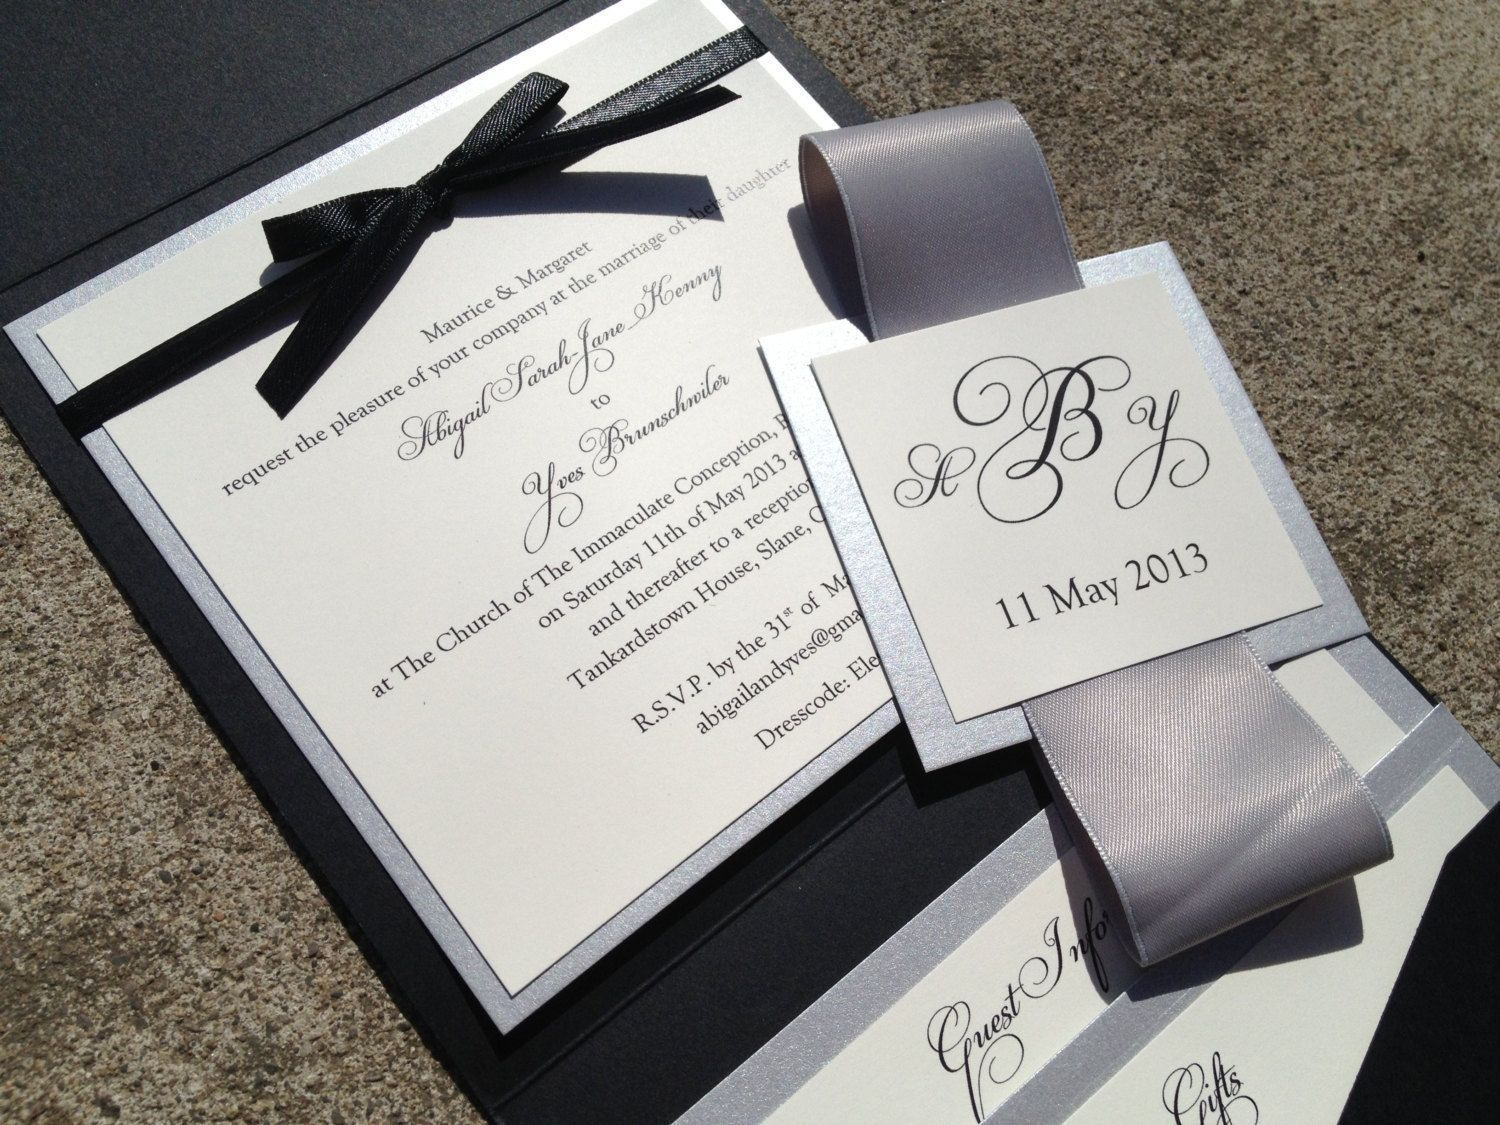 Cheap wedding invitations packs be sure to consult the owner to see cheap wedding invitations packs be sure to consult the owner to see if you will be able to have your wedding on their beach no 2 weddings will be the same filmwisefo